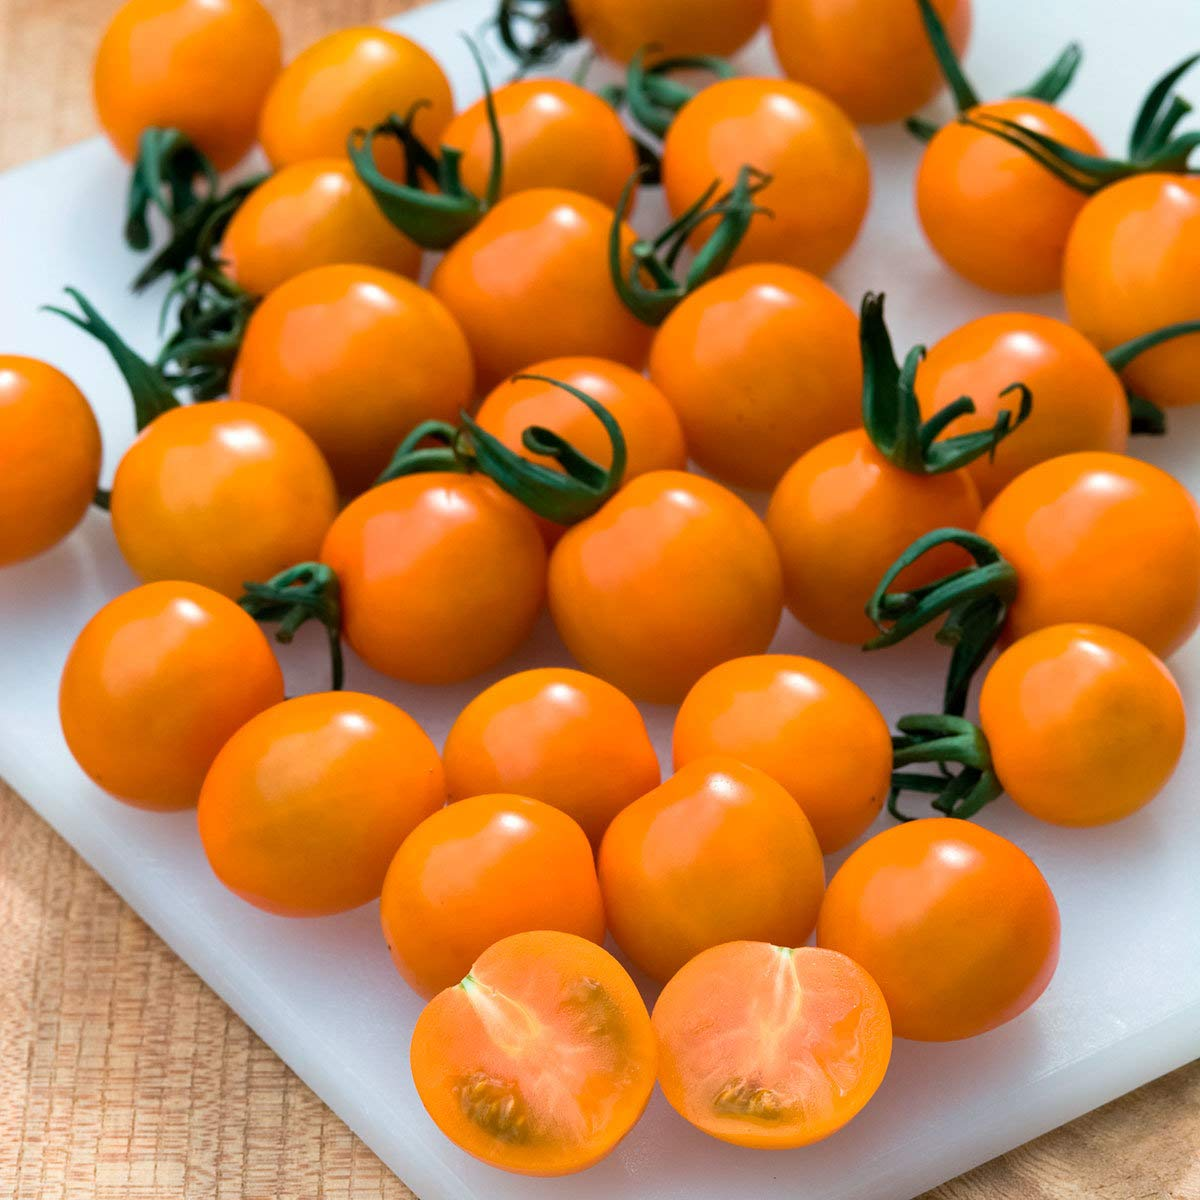 Risitar Garden - Rare 100pcs Orange Tomato Seeds - F1 Sungold (Lycopersicon esculentum) High yielding Seeds Easy to Grow, Exotic Vegetable Seeds Hardy Perennial Garden